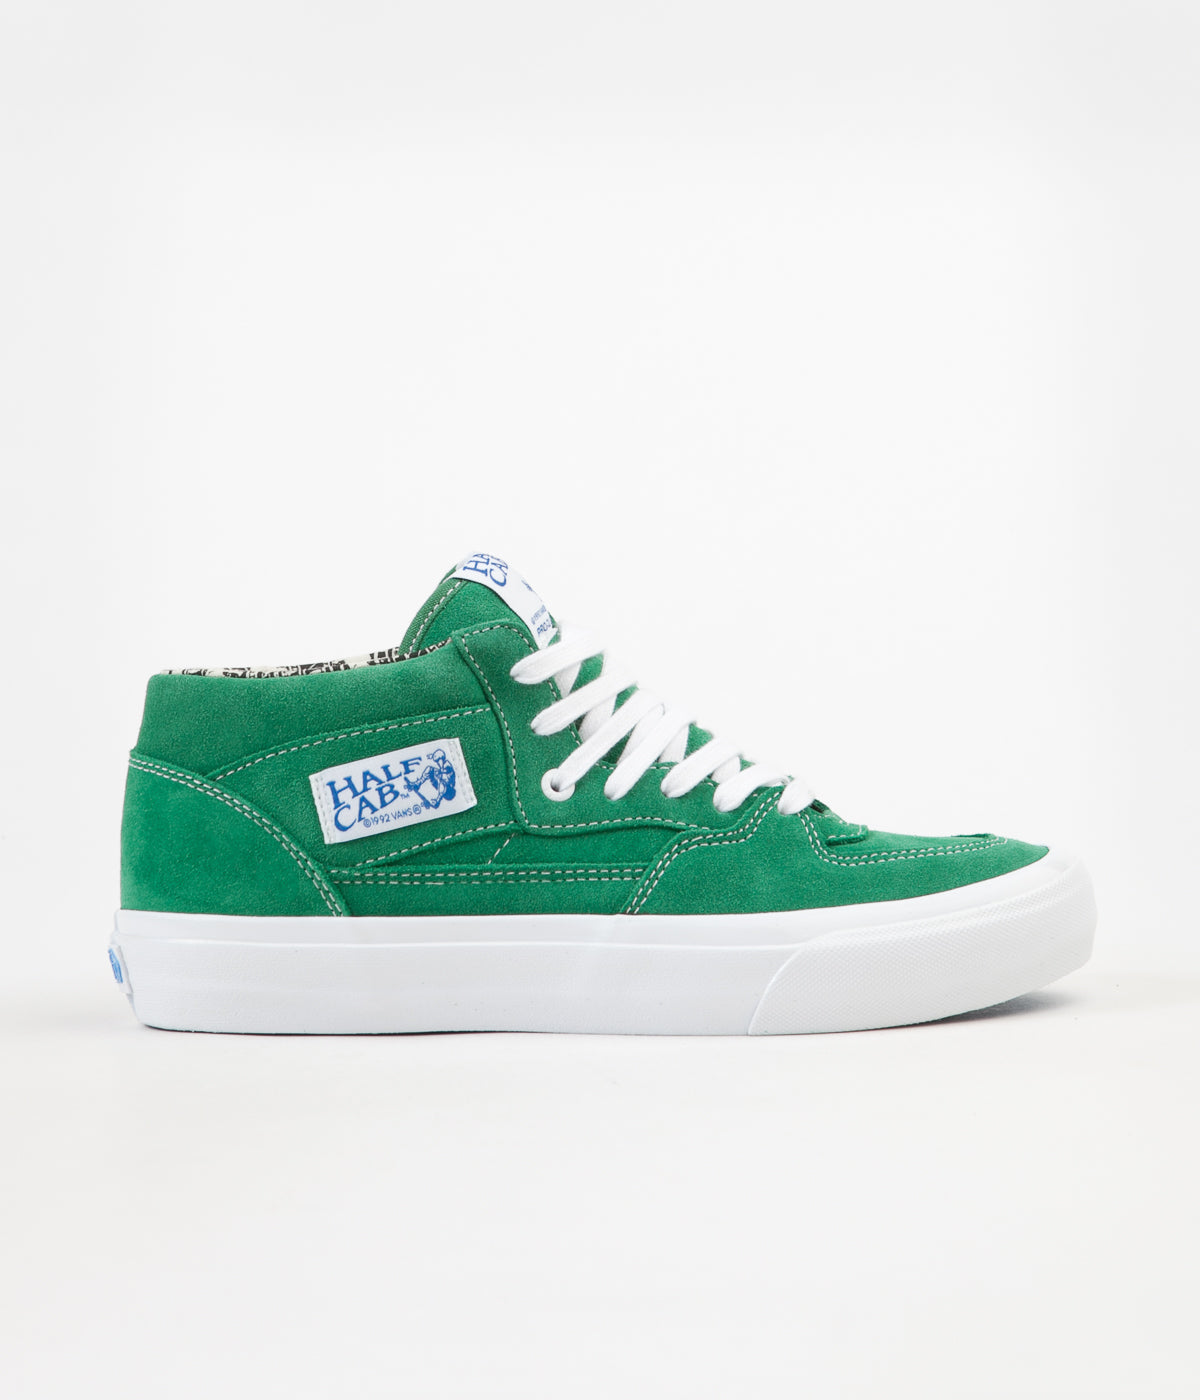 Vans Half Cab Pro (Ray Barbee) Shoes - OG Emerald